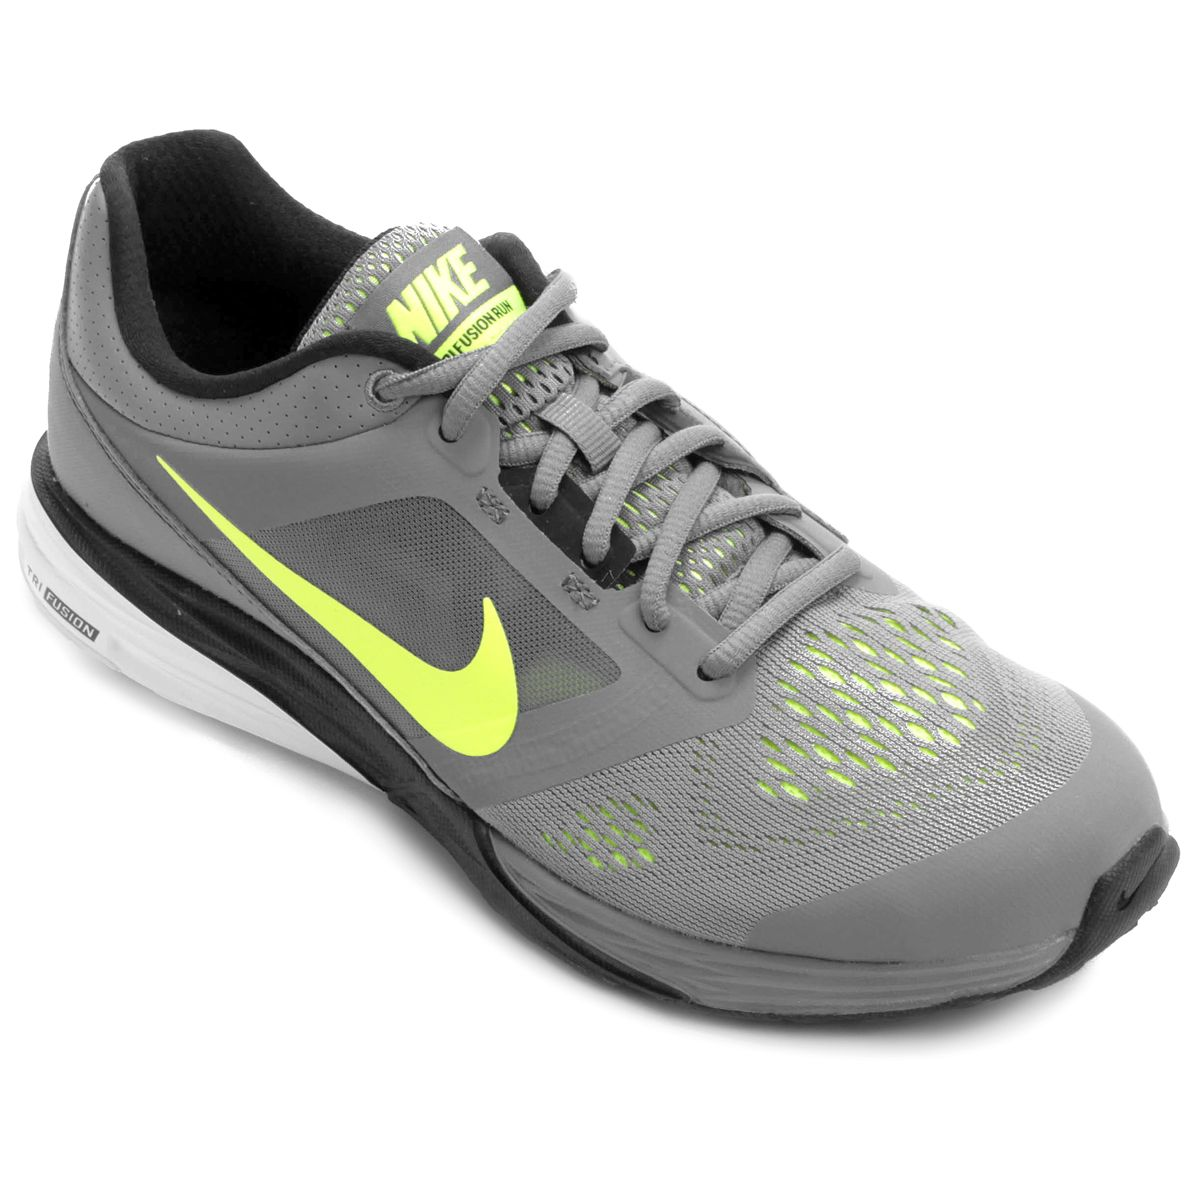 quality design 846d2 de7f0 Netshoes Tênis Nike Air Max Sequent > R$ 249,90 | Bem Barato | Sneakers nike,  Nike e Nike air max